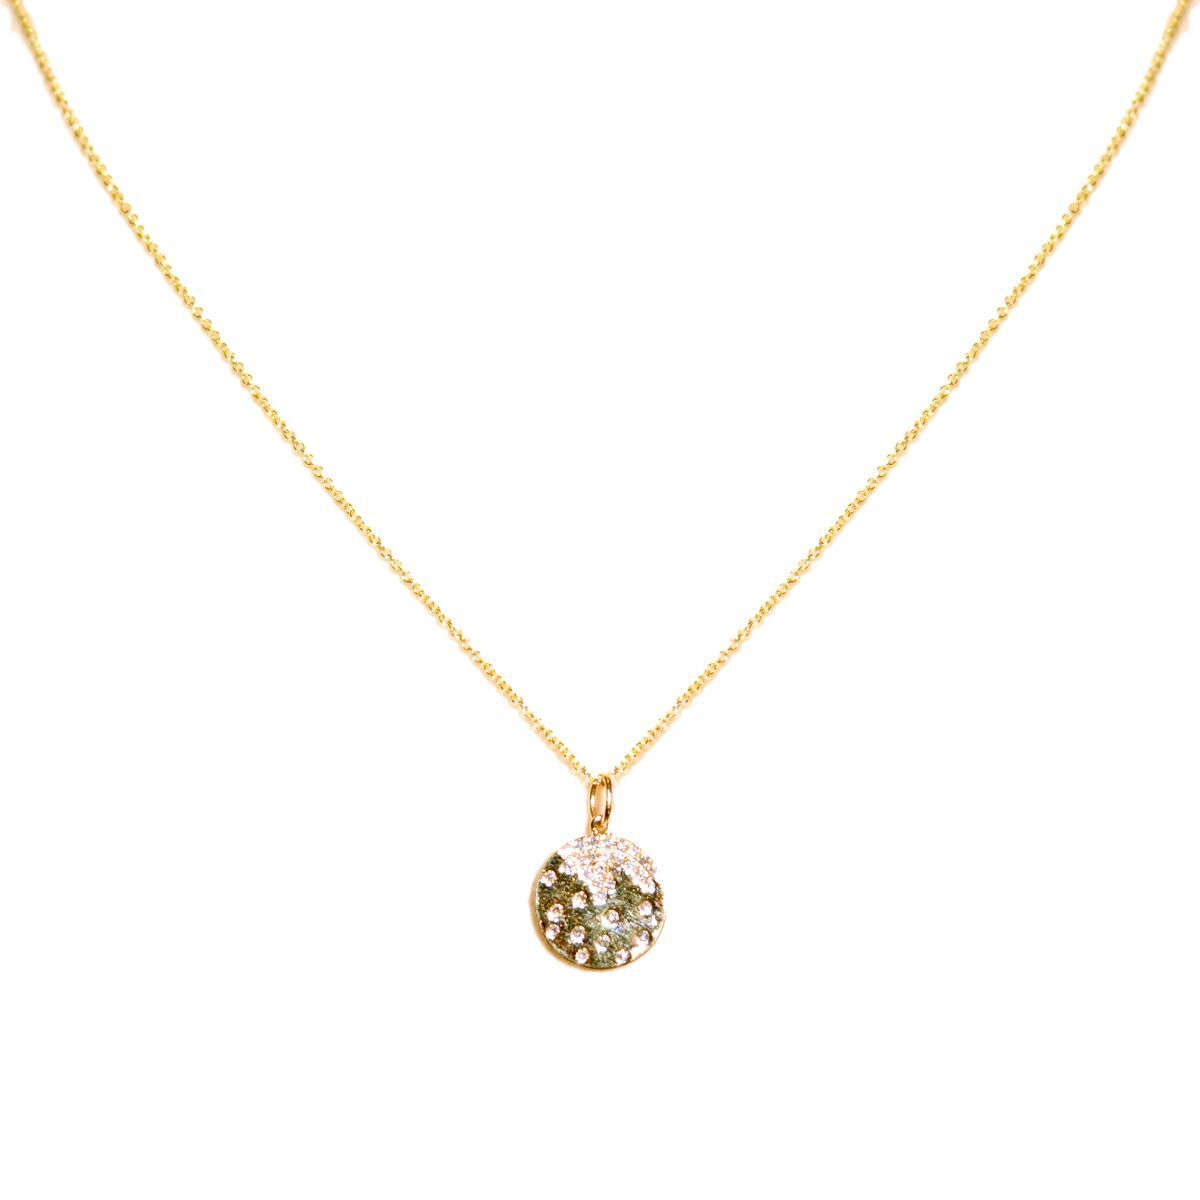 Starry Diamond Disc Necklace